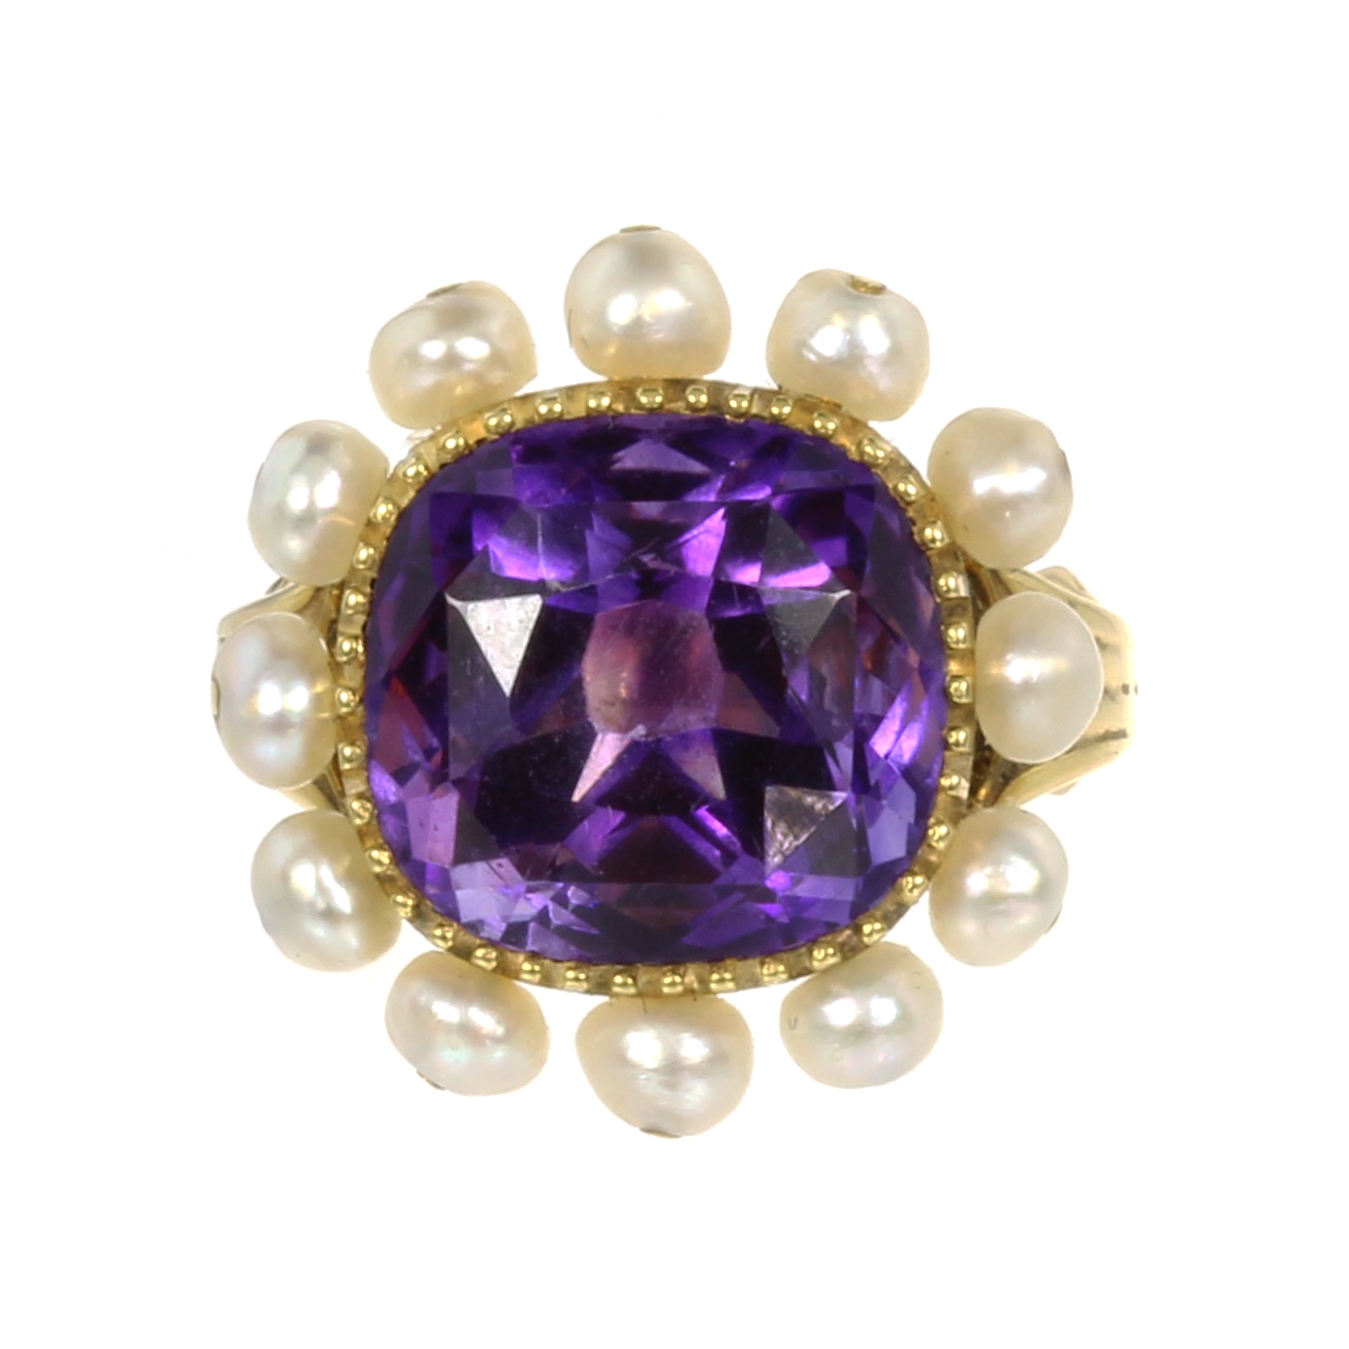 AN ANTIQUE AMETHYST AND PEARL DRESS RING set with a central cushion cut amethyst of 8.37 carats